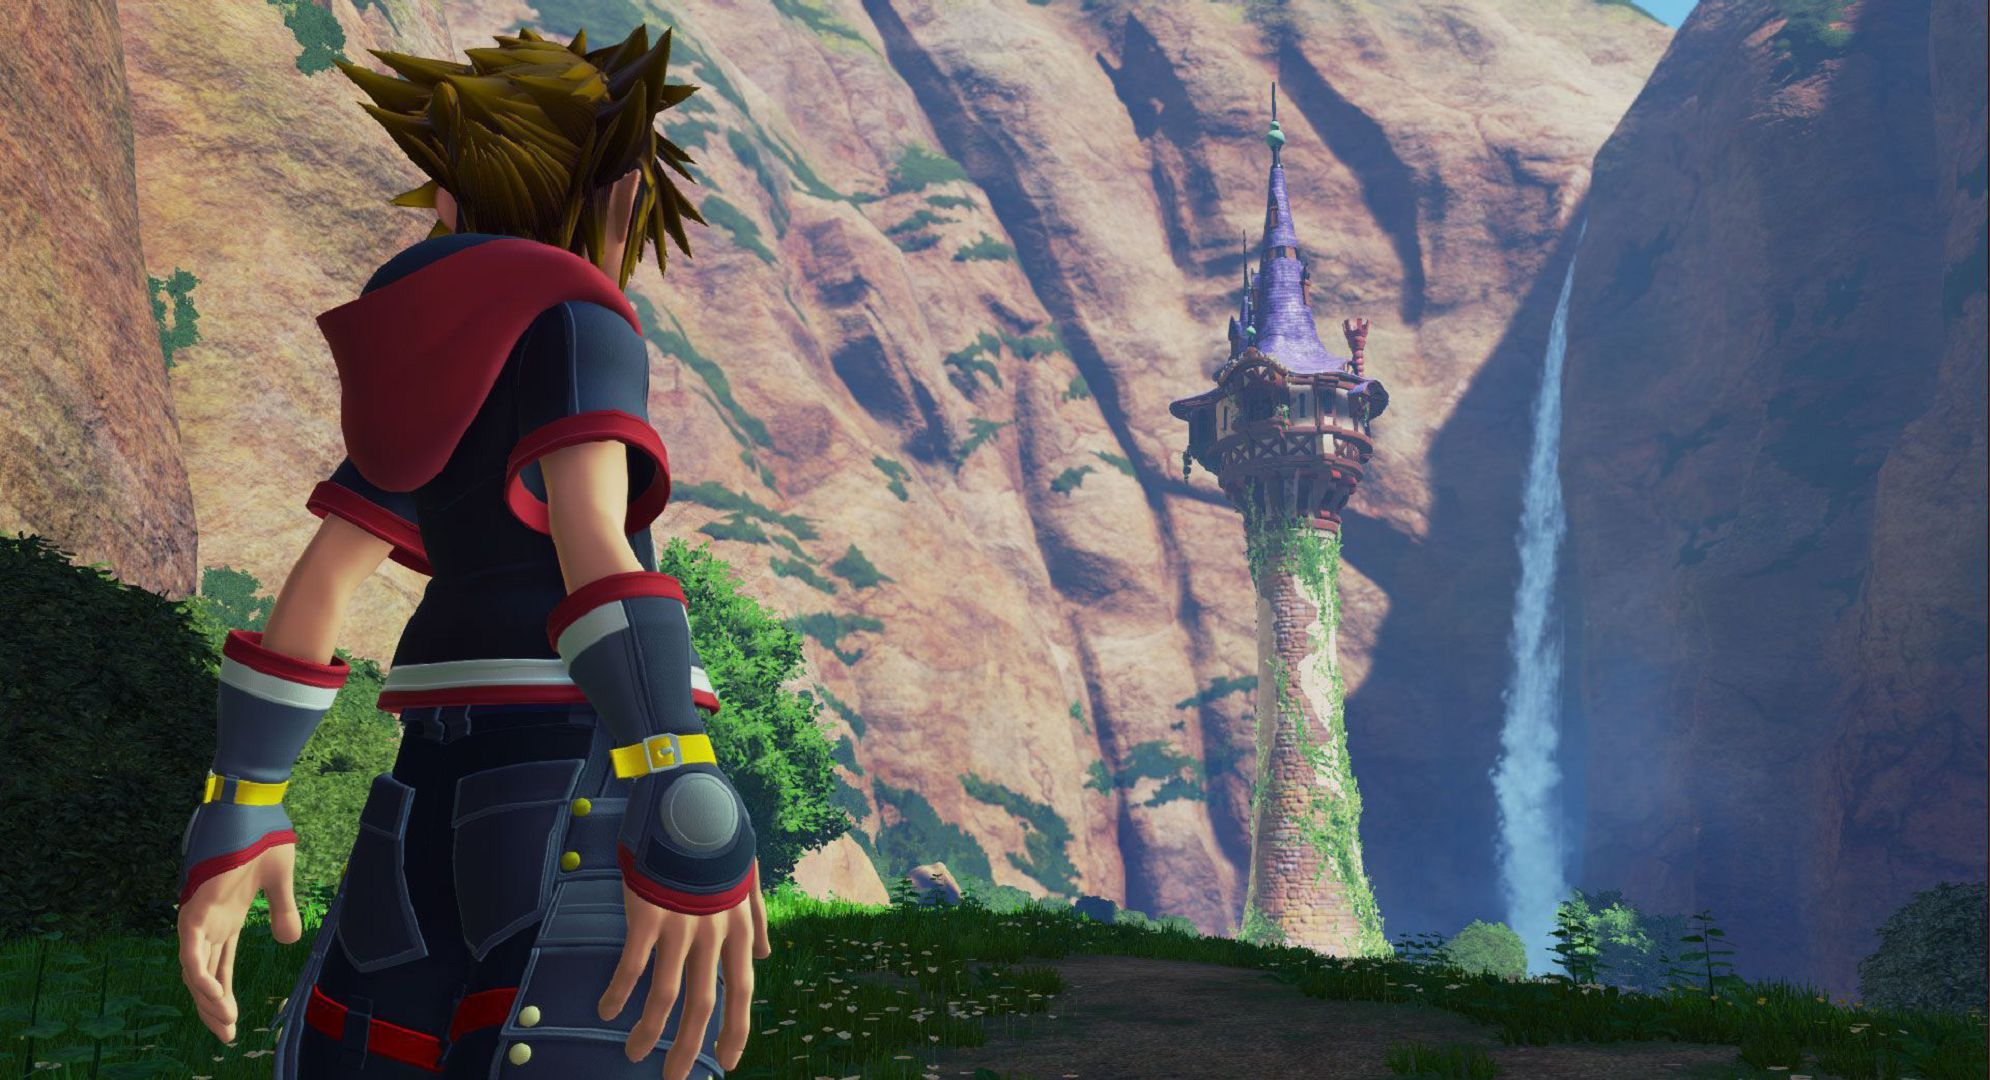 Kingdom Hearts 3 In High Resolution